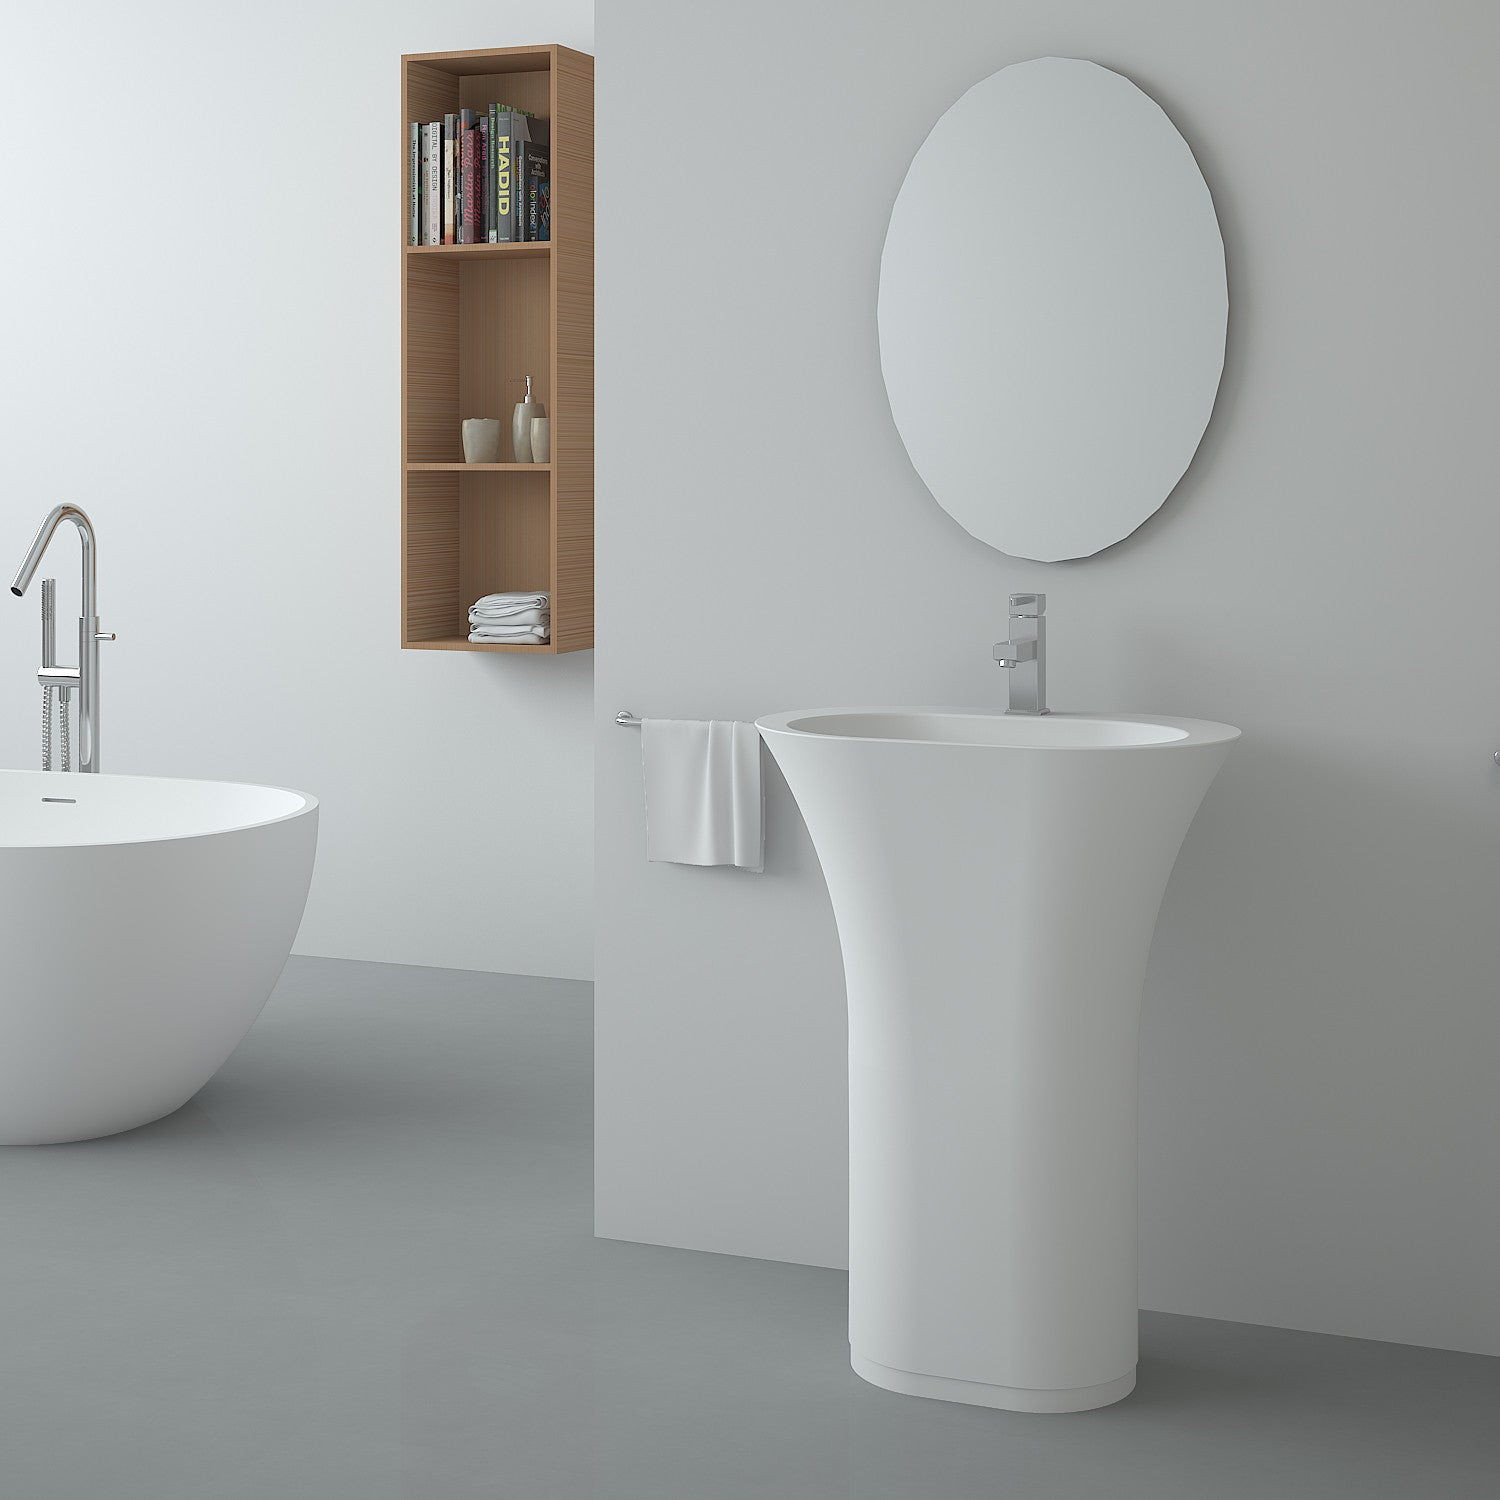 SBS-8502 | Freestanding Basin